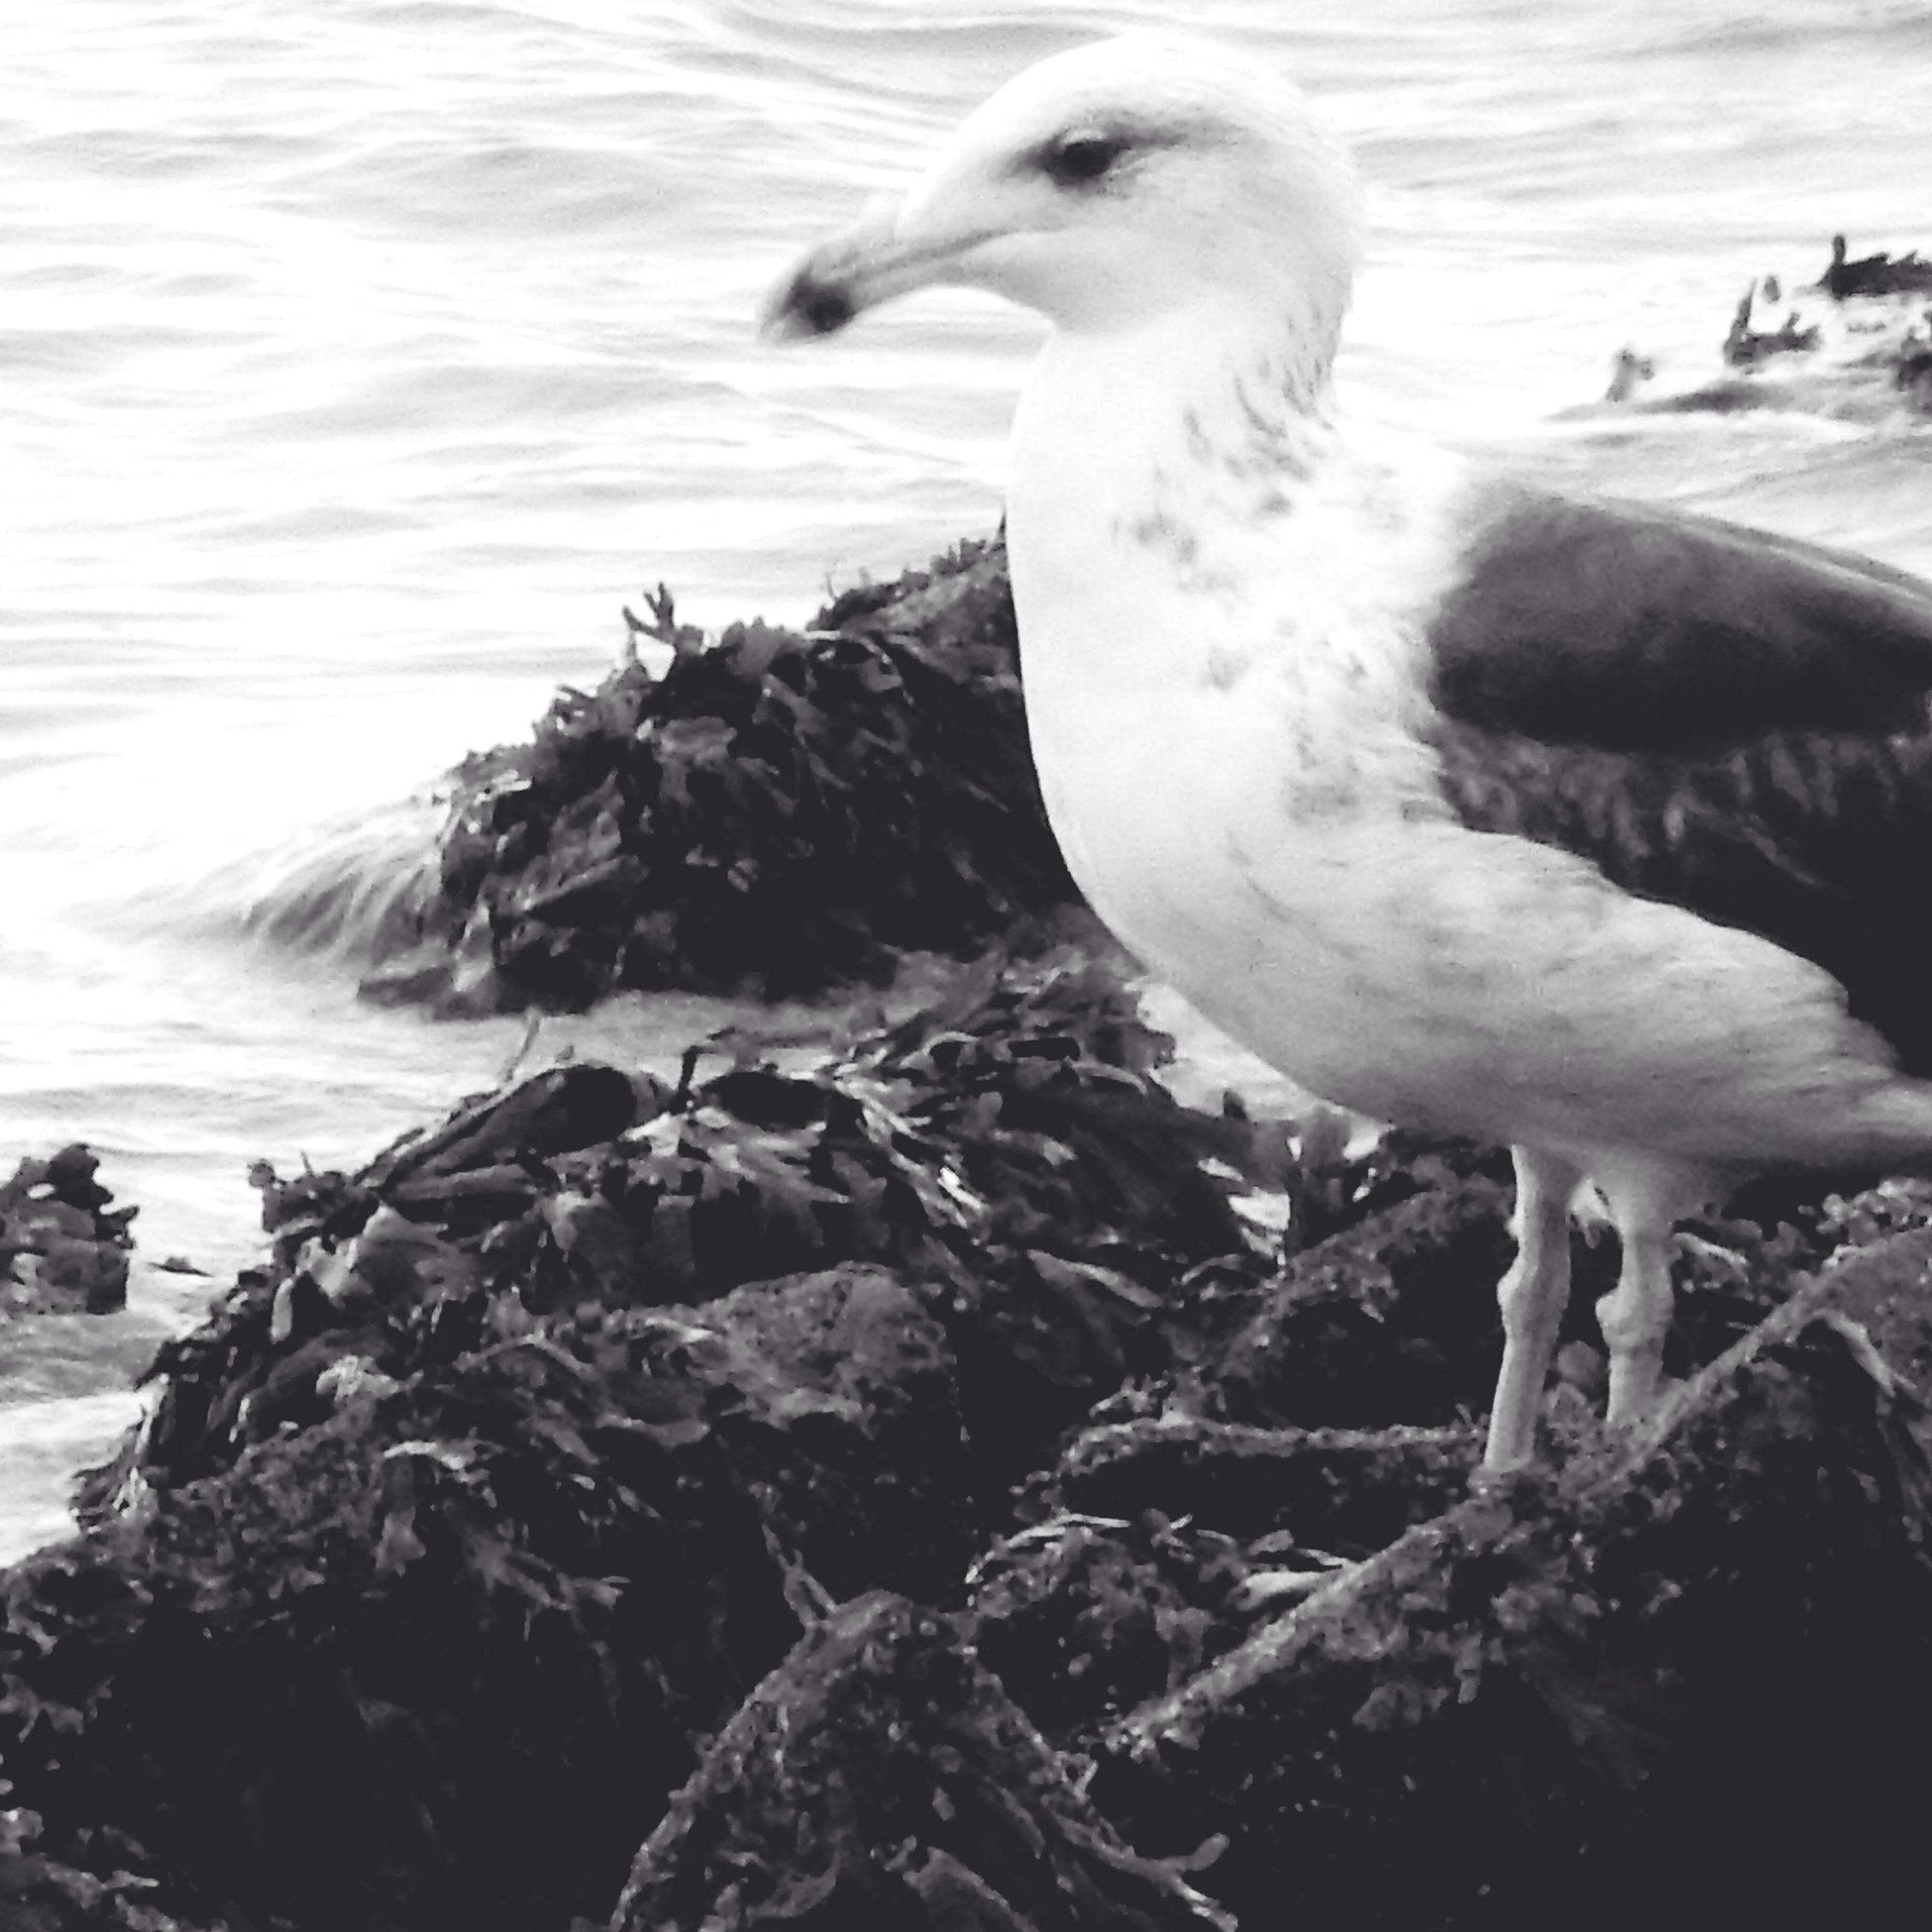 animal themes, bird, animals in the wild, wildlife, one animal, water, nature, beak, seagull, two animals, sea, outdoors, close-up, day, sunlight, rock - object, lake, no people, zoology, swan